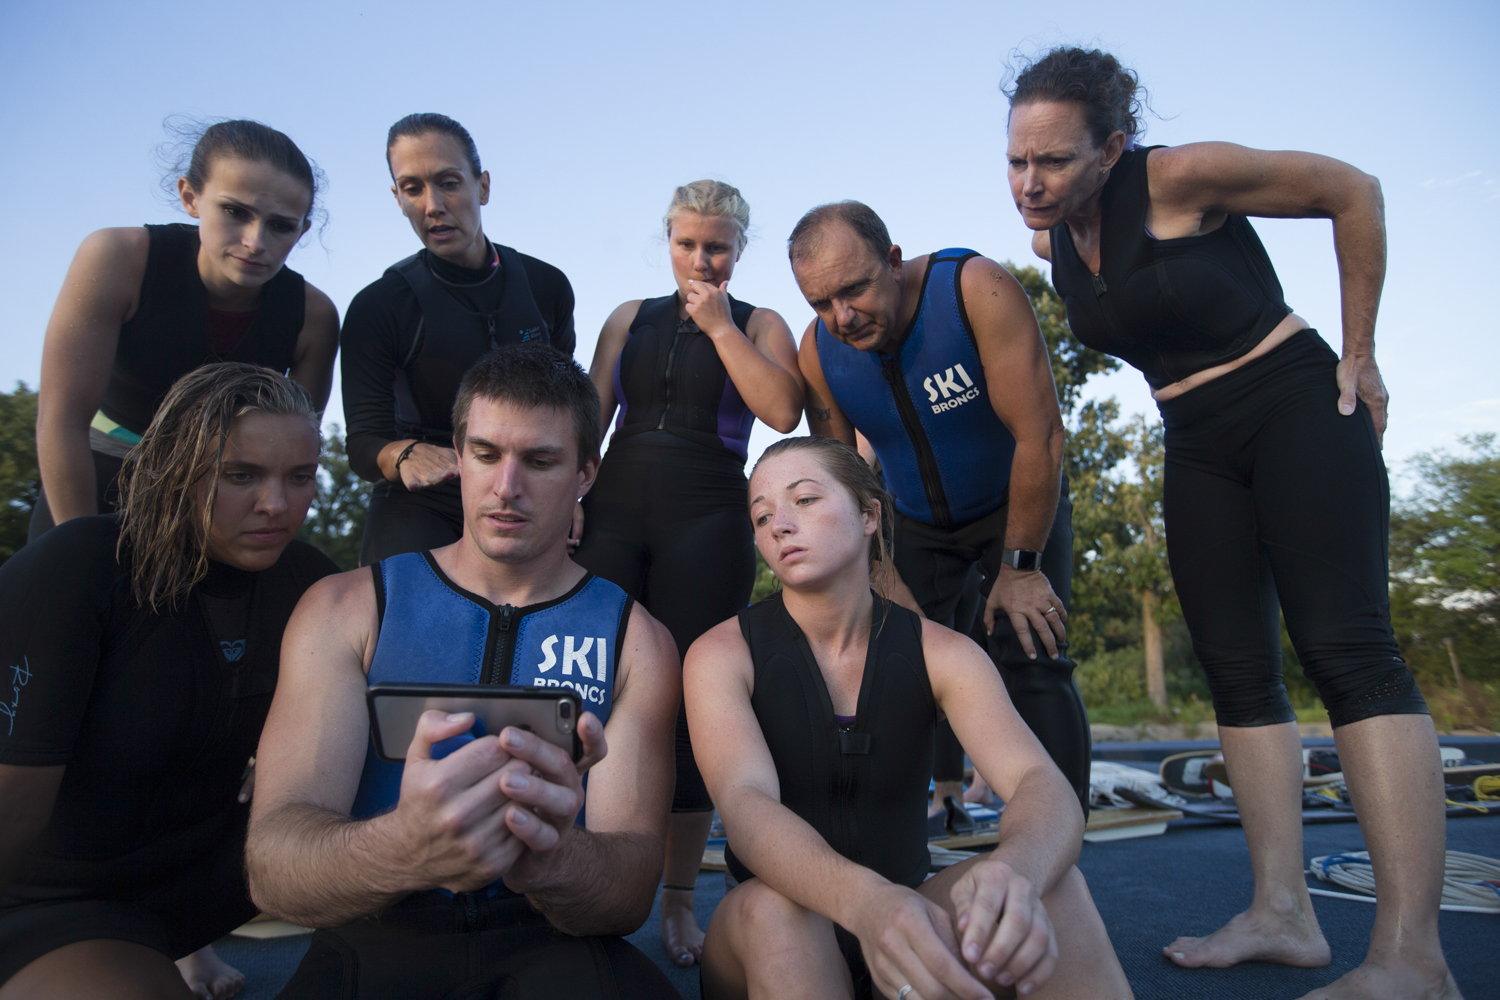 Show director Brandon Seerup, center, and members of the team review a mobile phone video of their last formation while sitting on the edge of the dock on Tuesday, July 31, 2018, at Shorewood Park in Loves Park. [SCOTT P. YATES/RRSTAR.COM STAFF]